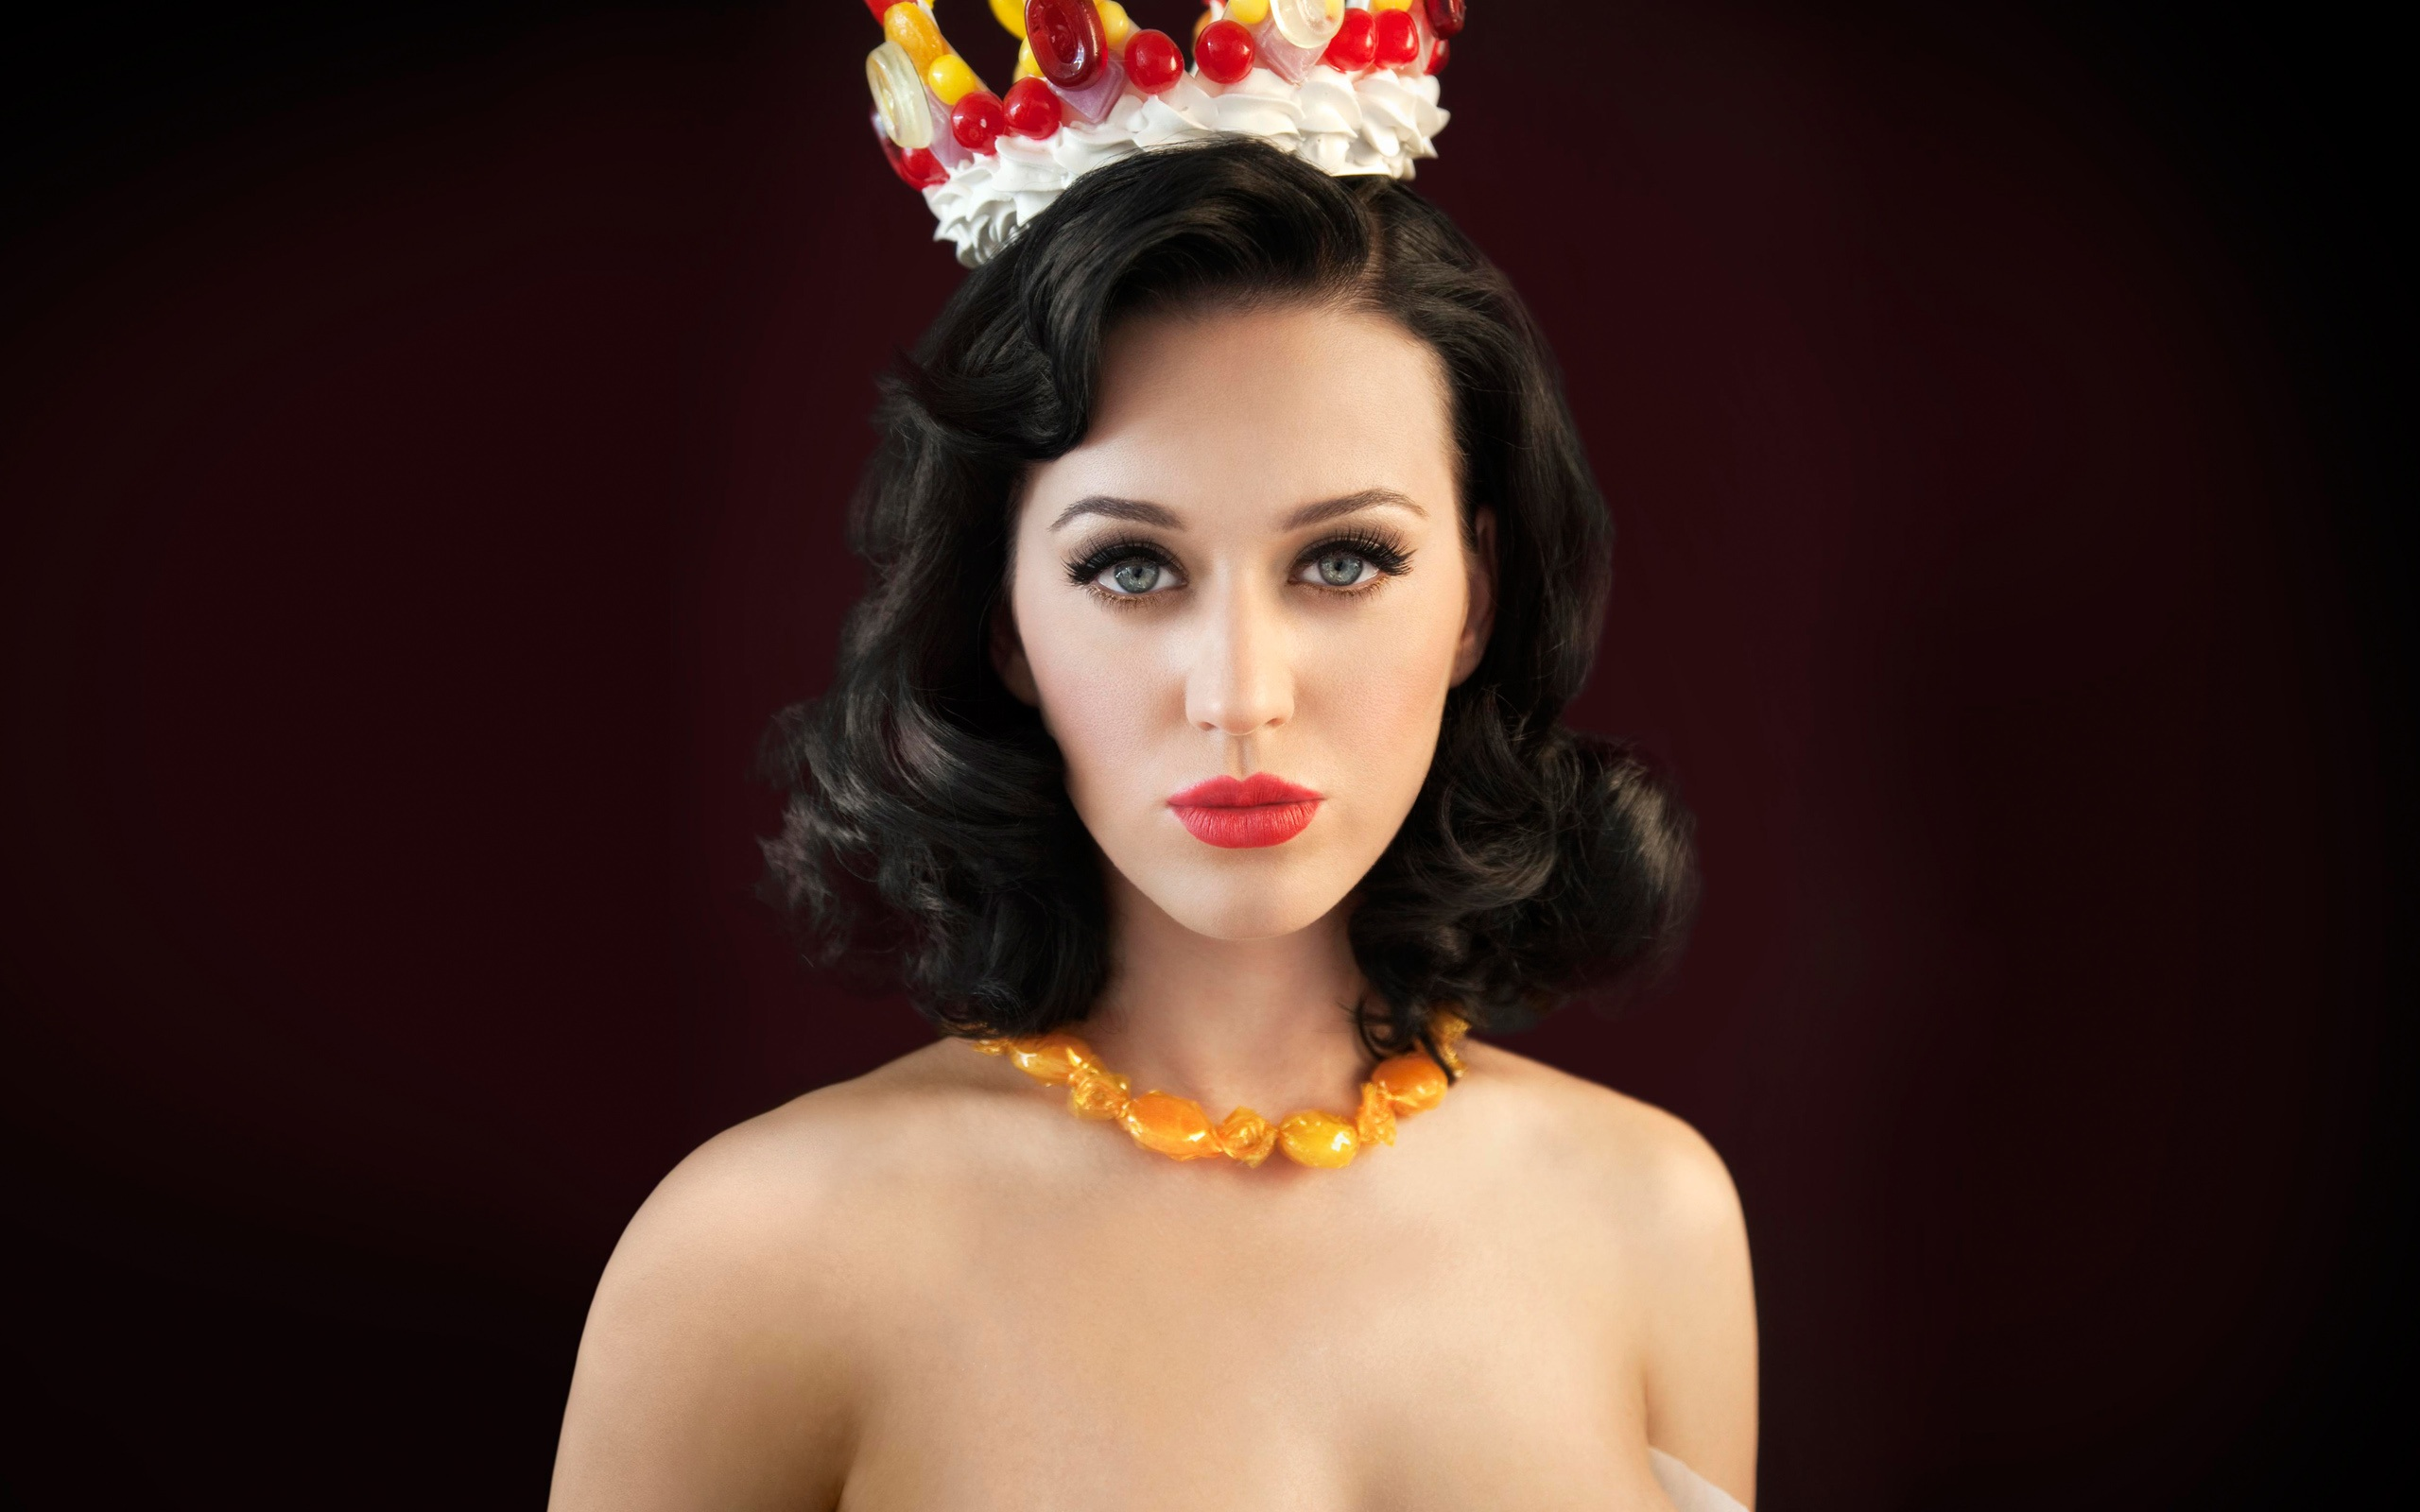 Katy Perry Wallpaper A14